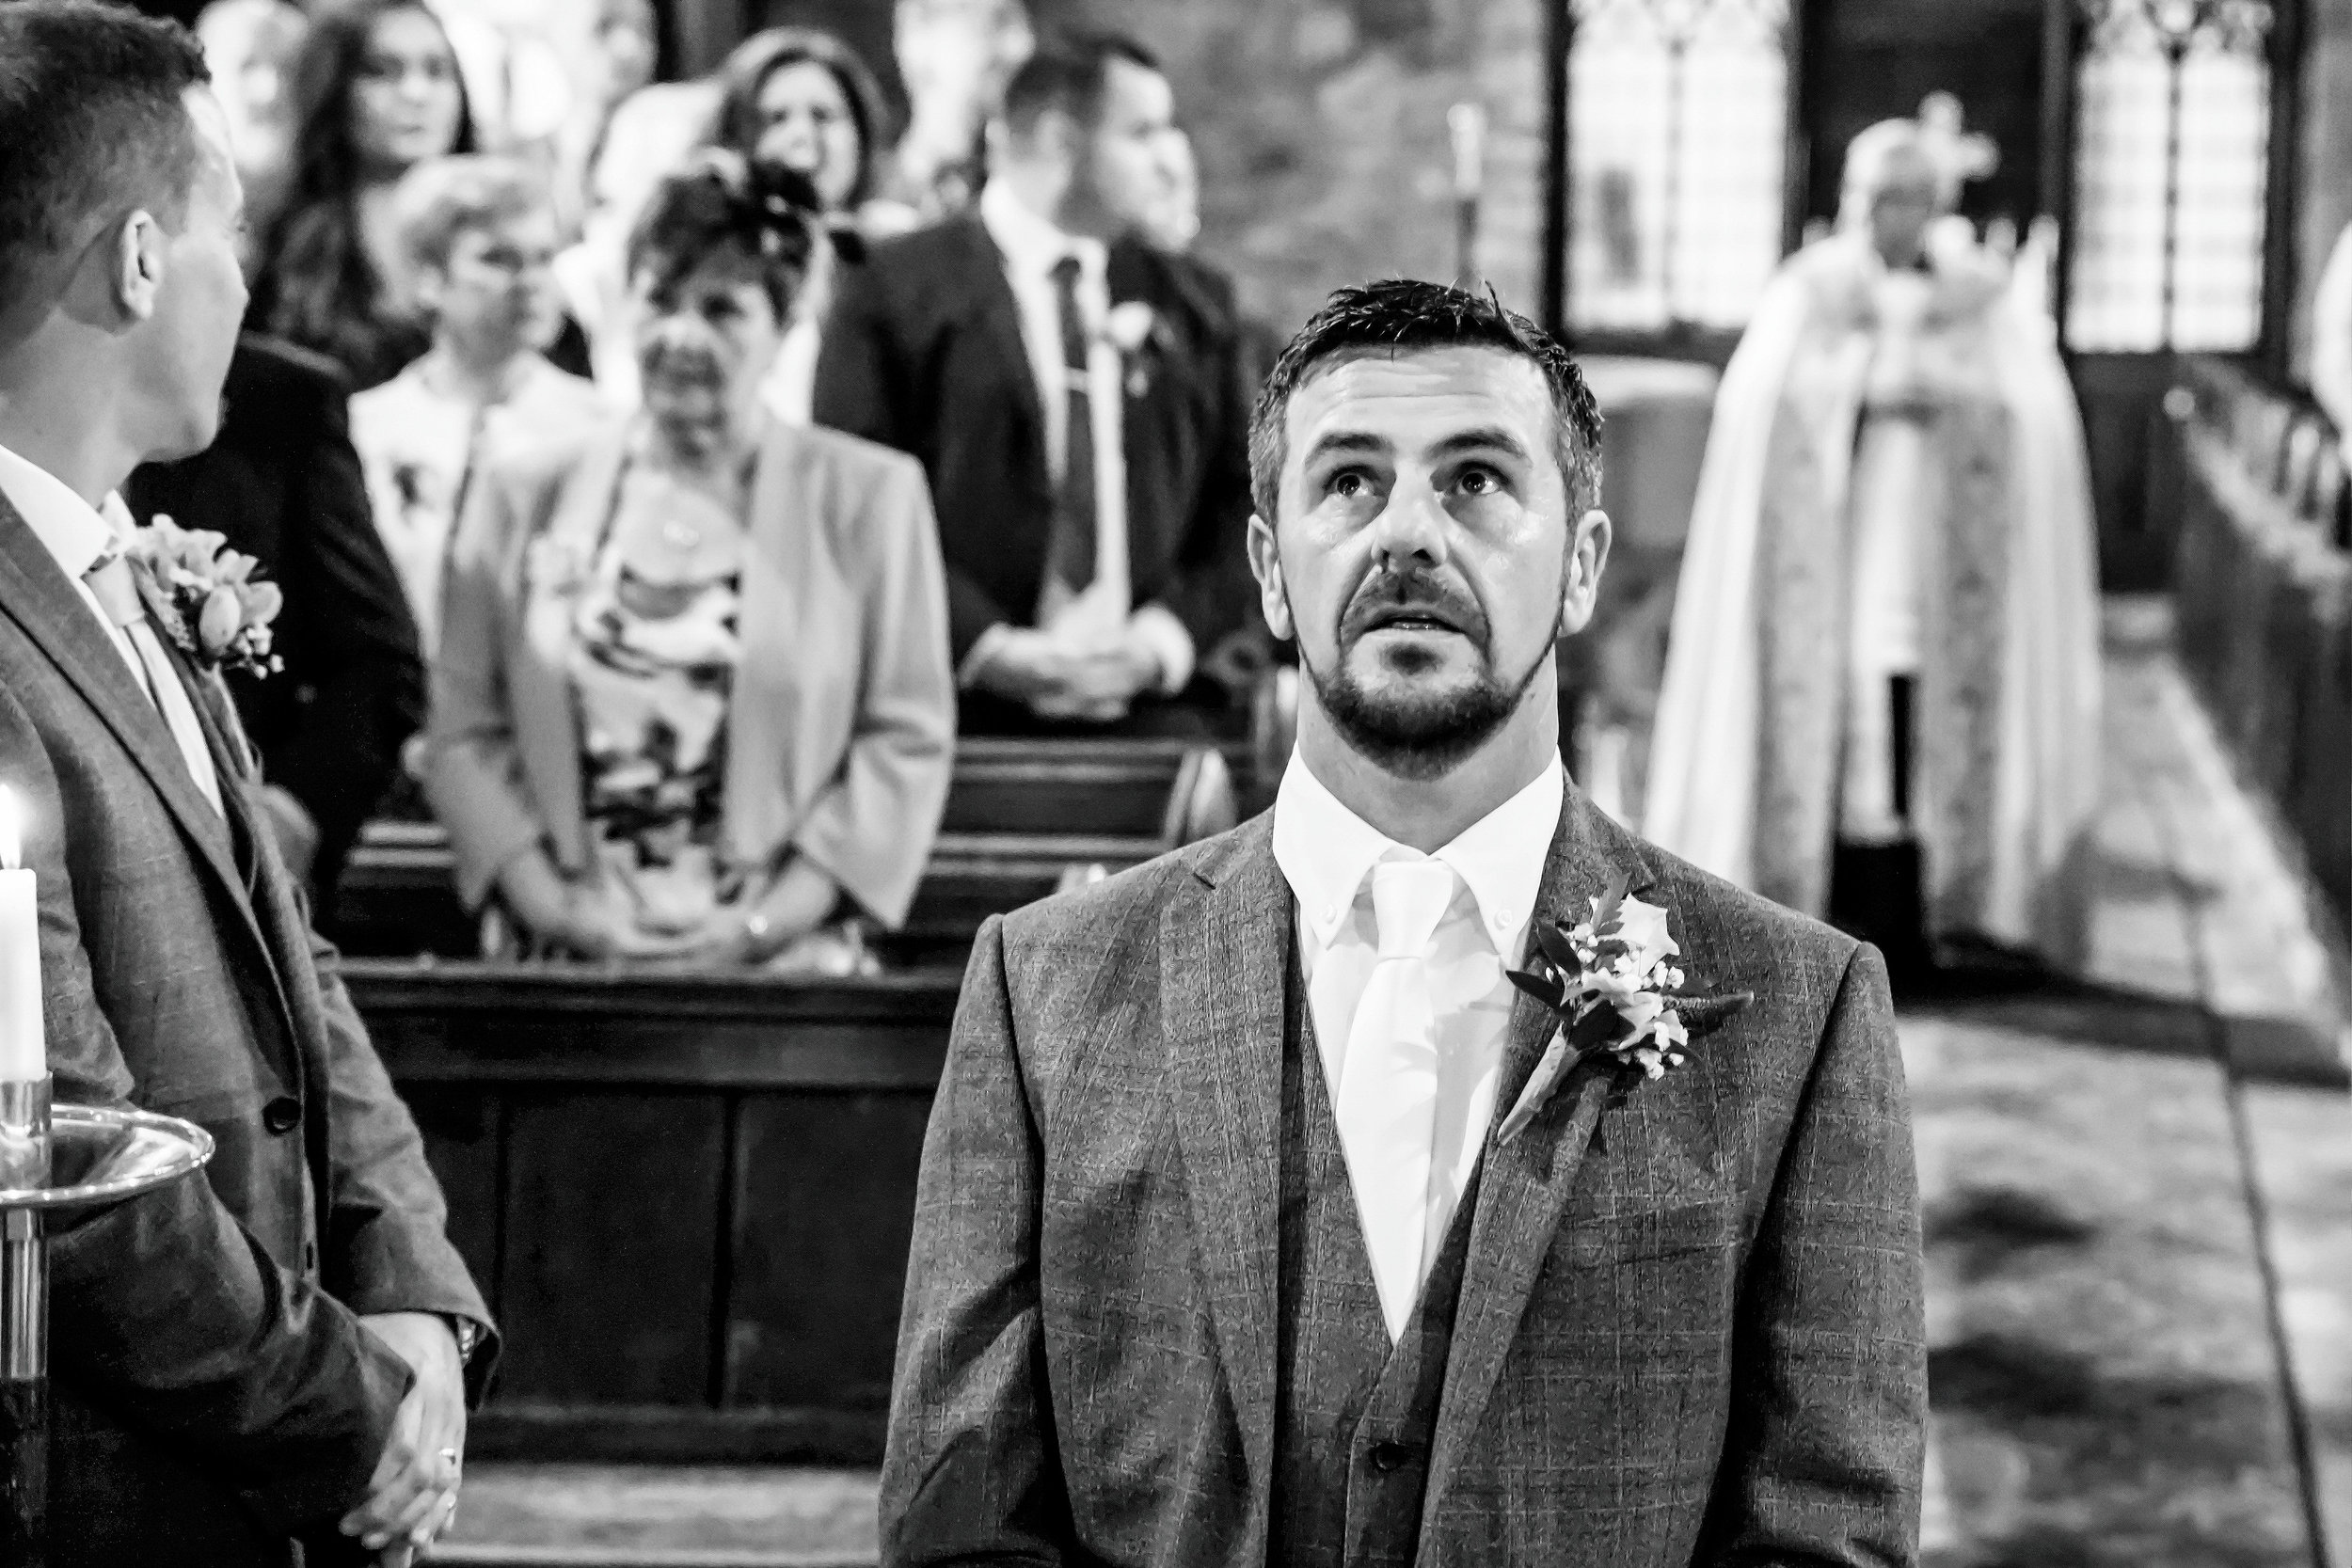 Awaiting the arrival of his Bride. Documentary Wedding Photography by James; Nia & James The Photographers